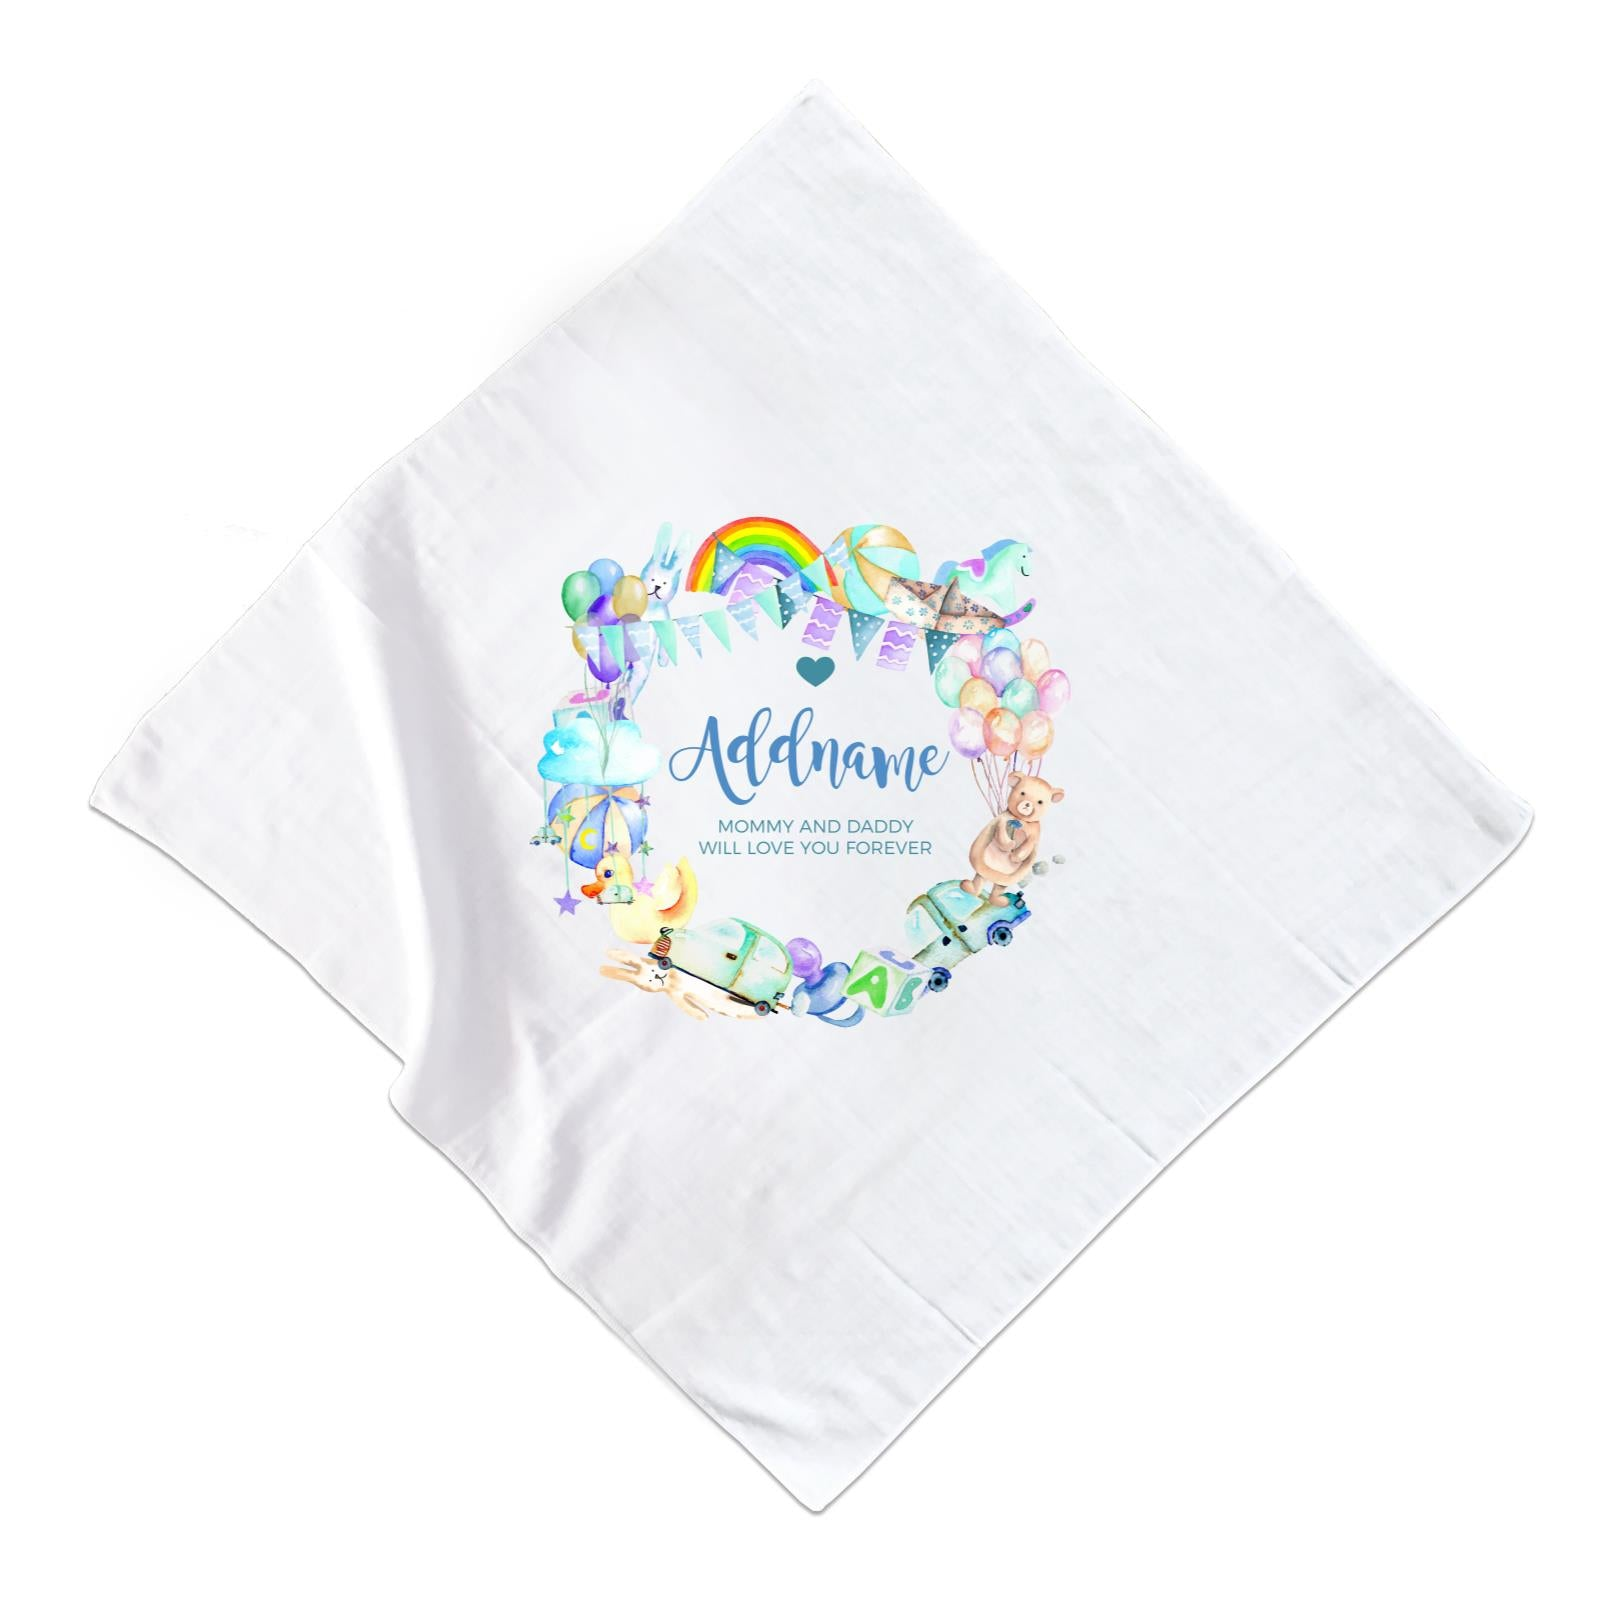 Watercolour Magical Boyish Creatures and Elements Personalizable with Name and Text Muslin Square